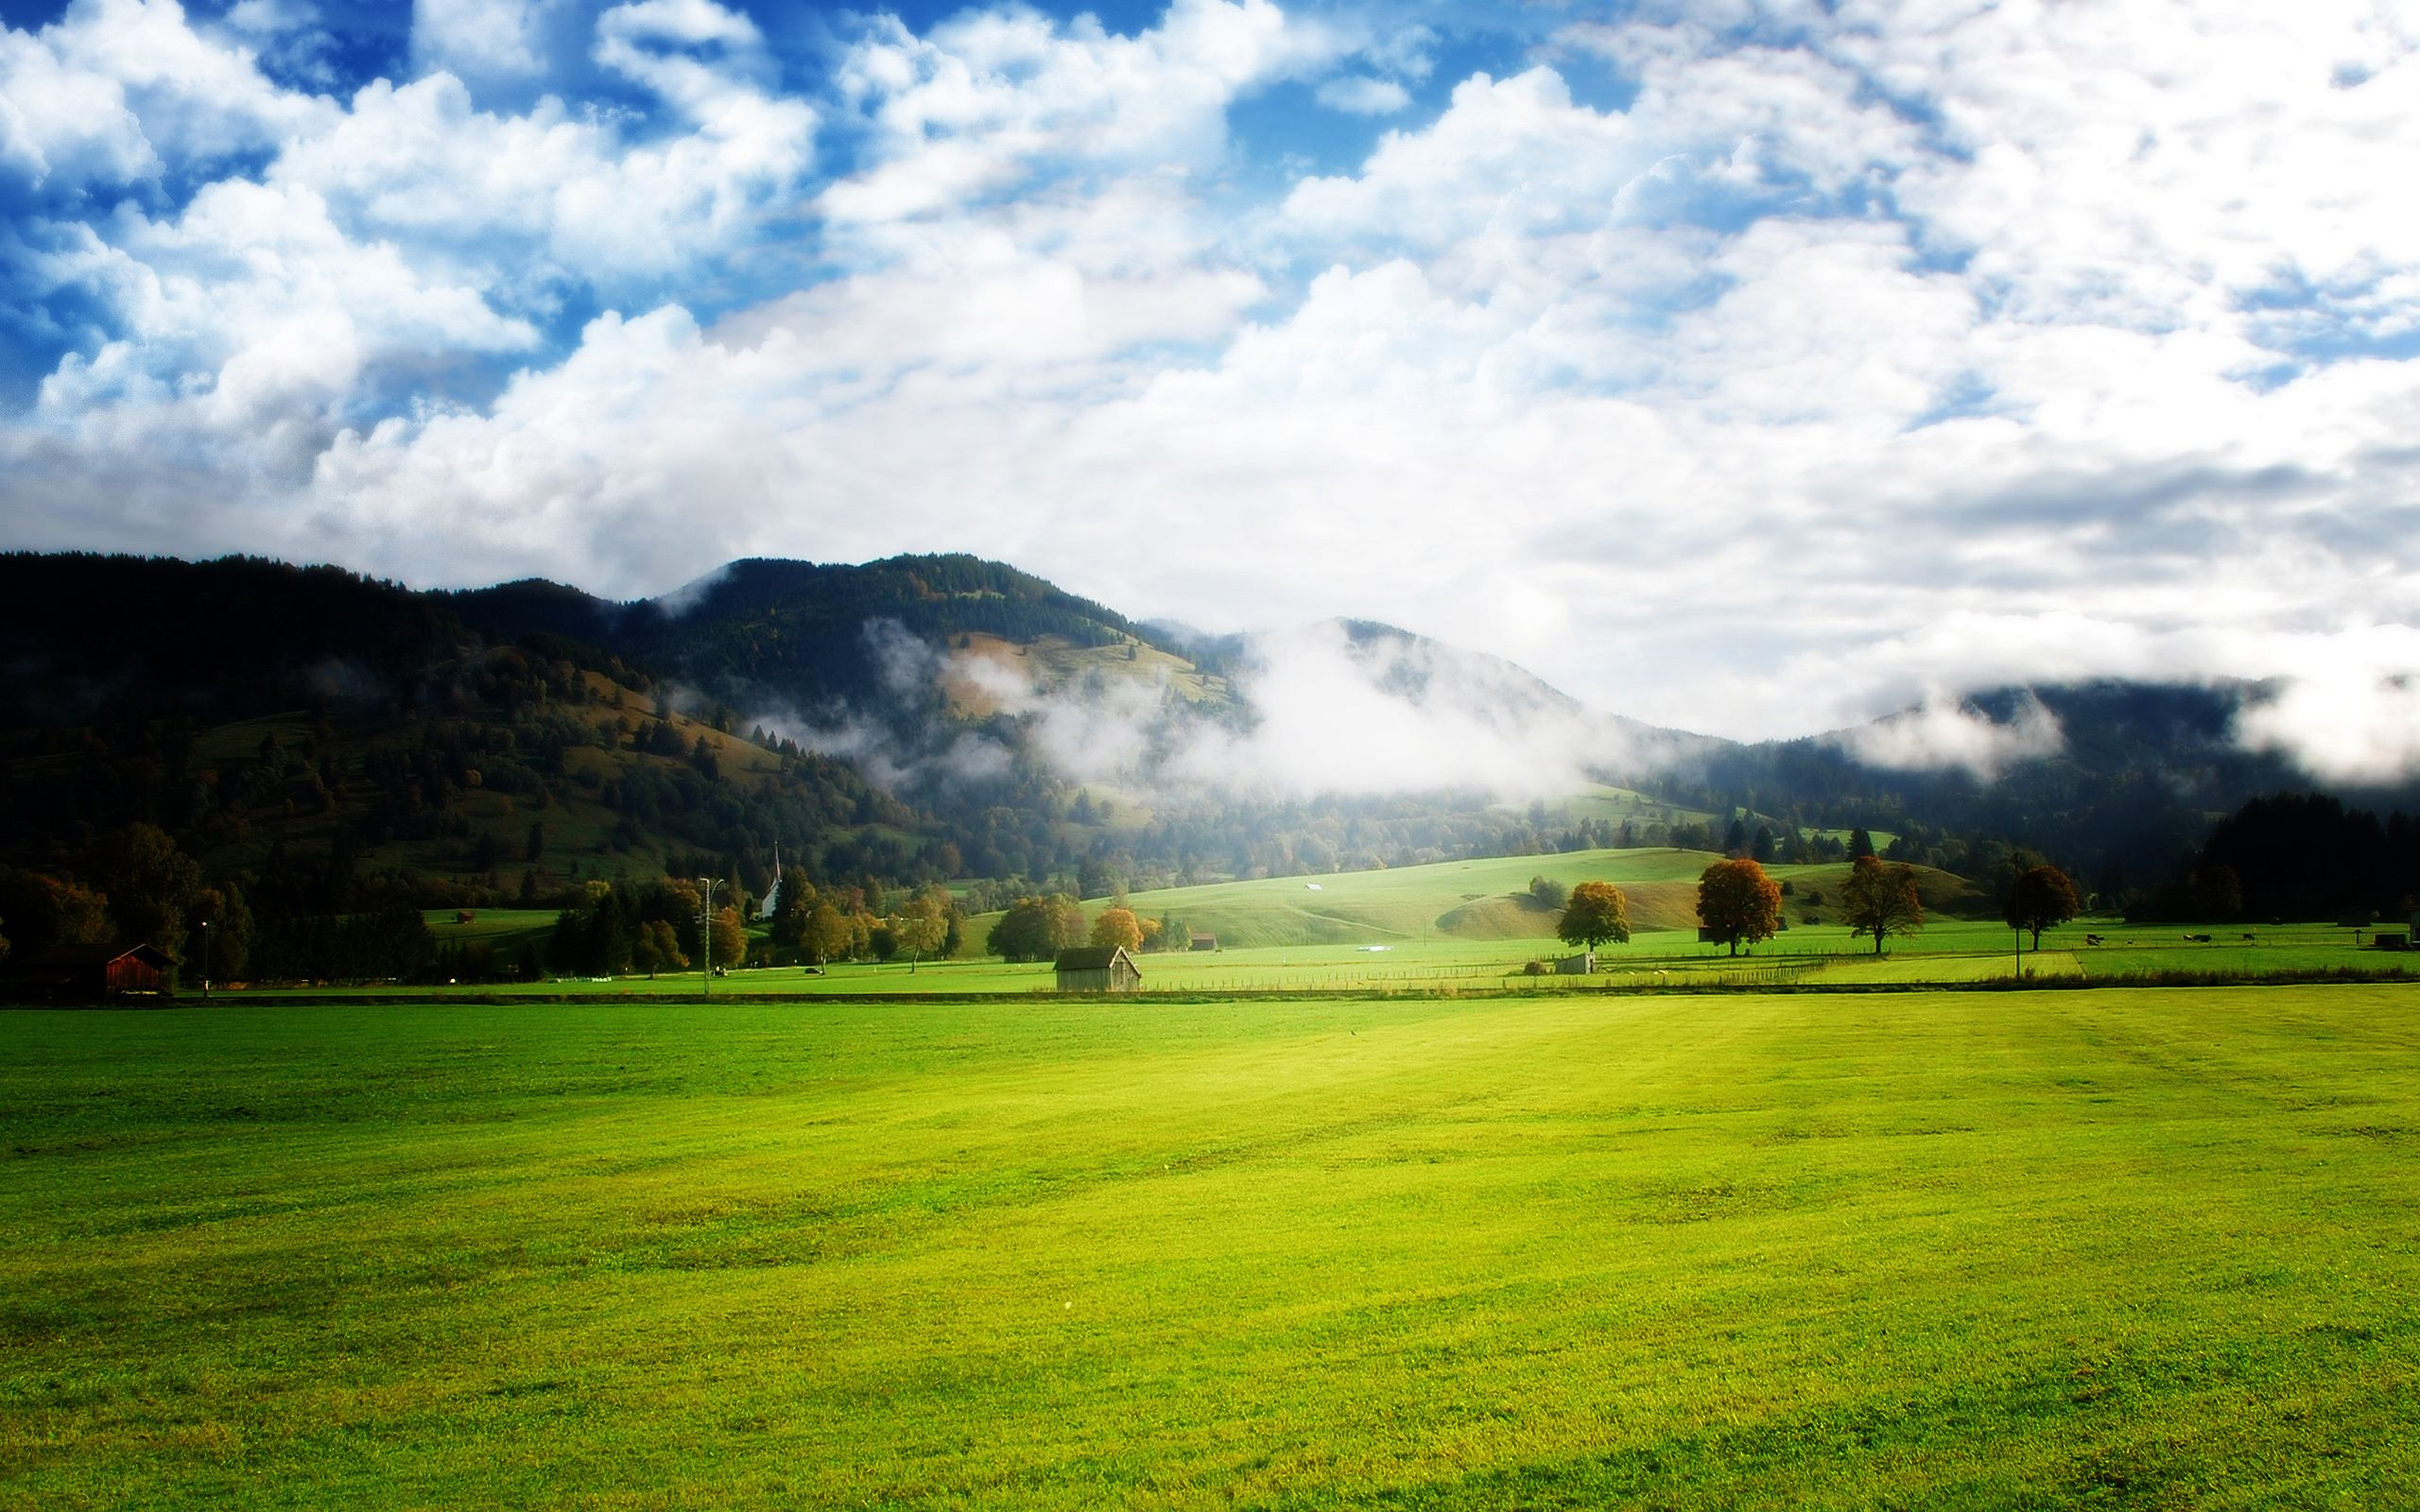 pin rendering landschaft hd - photo #35